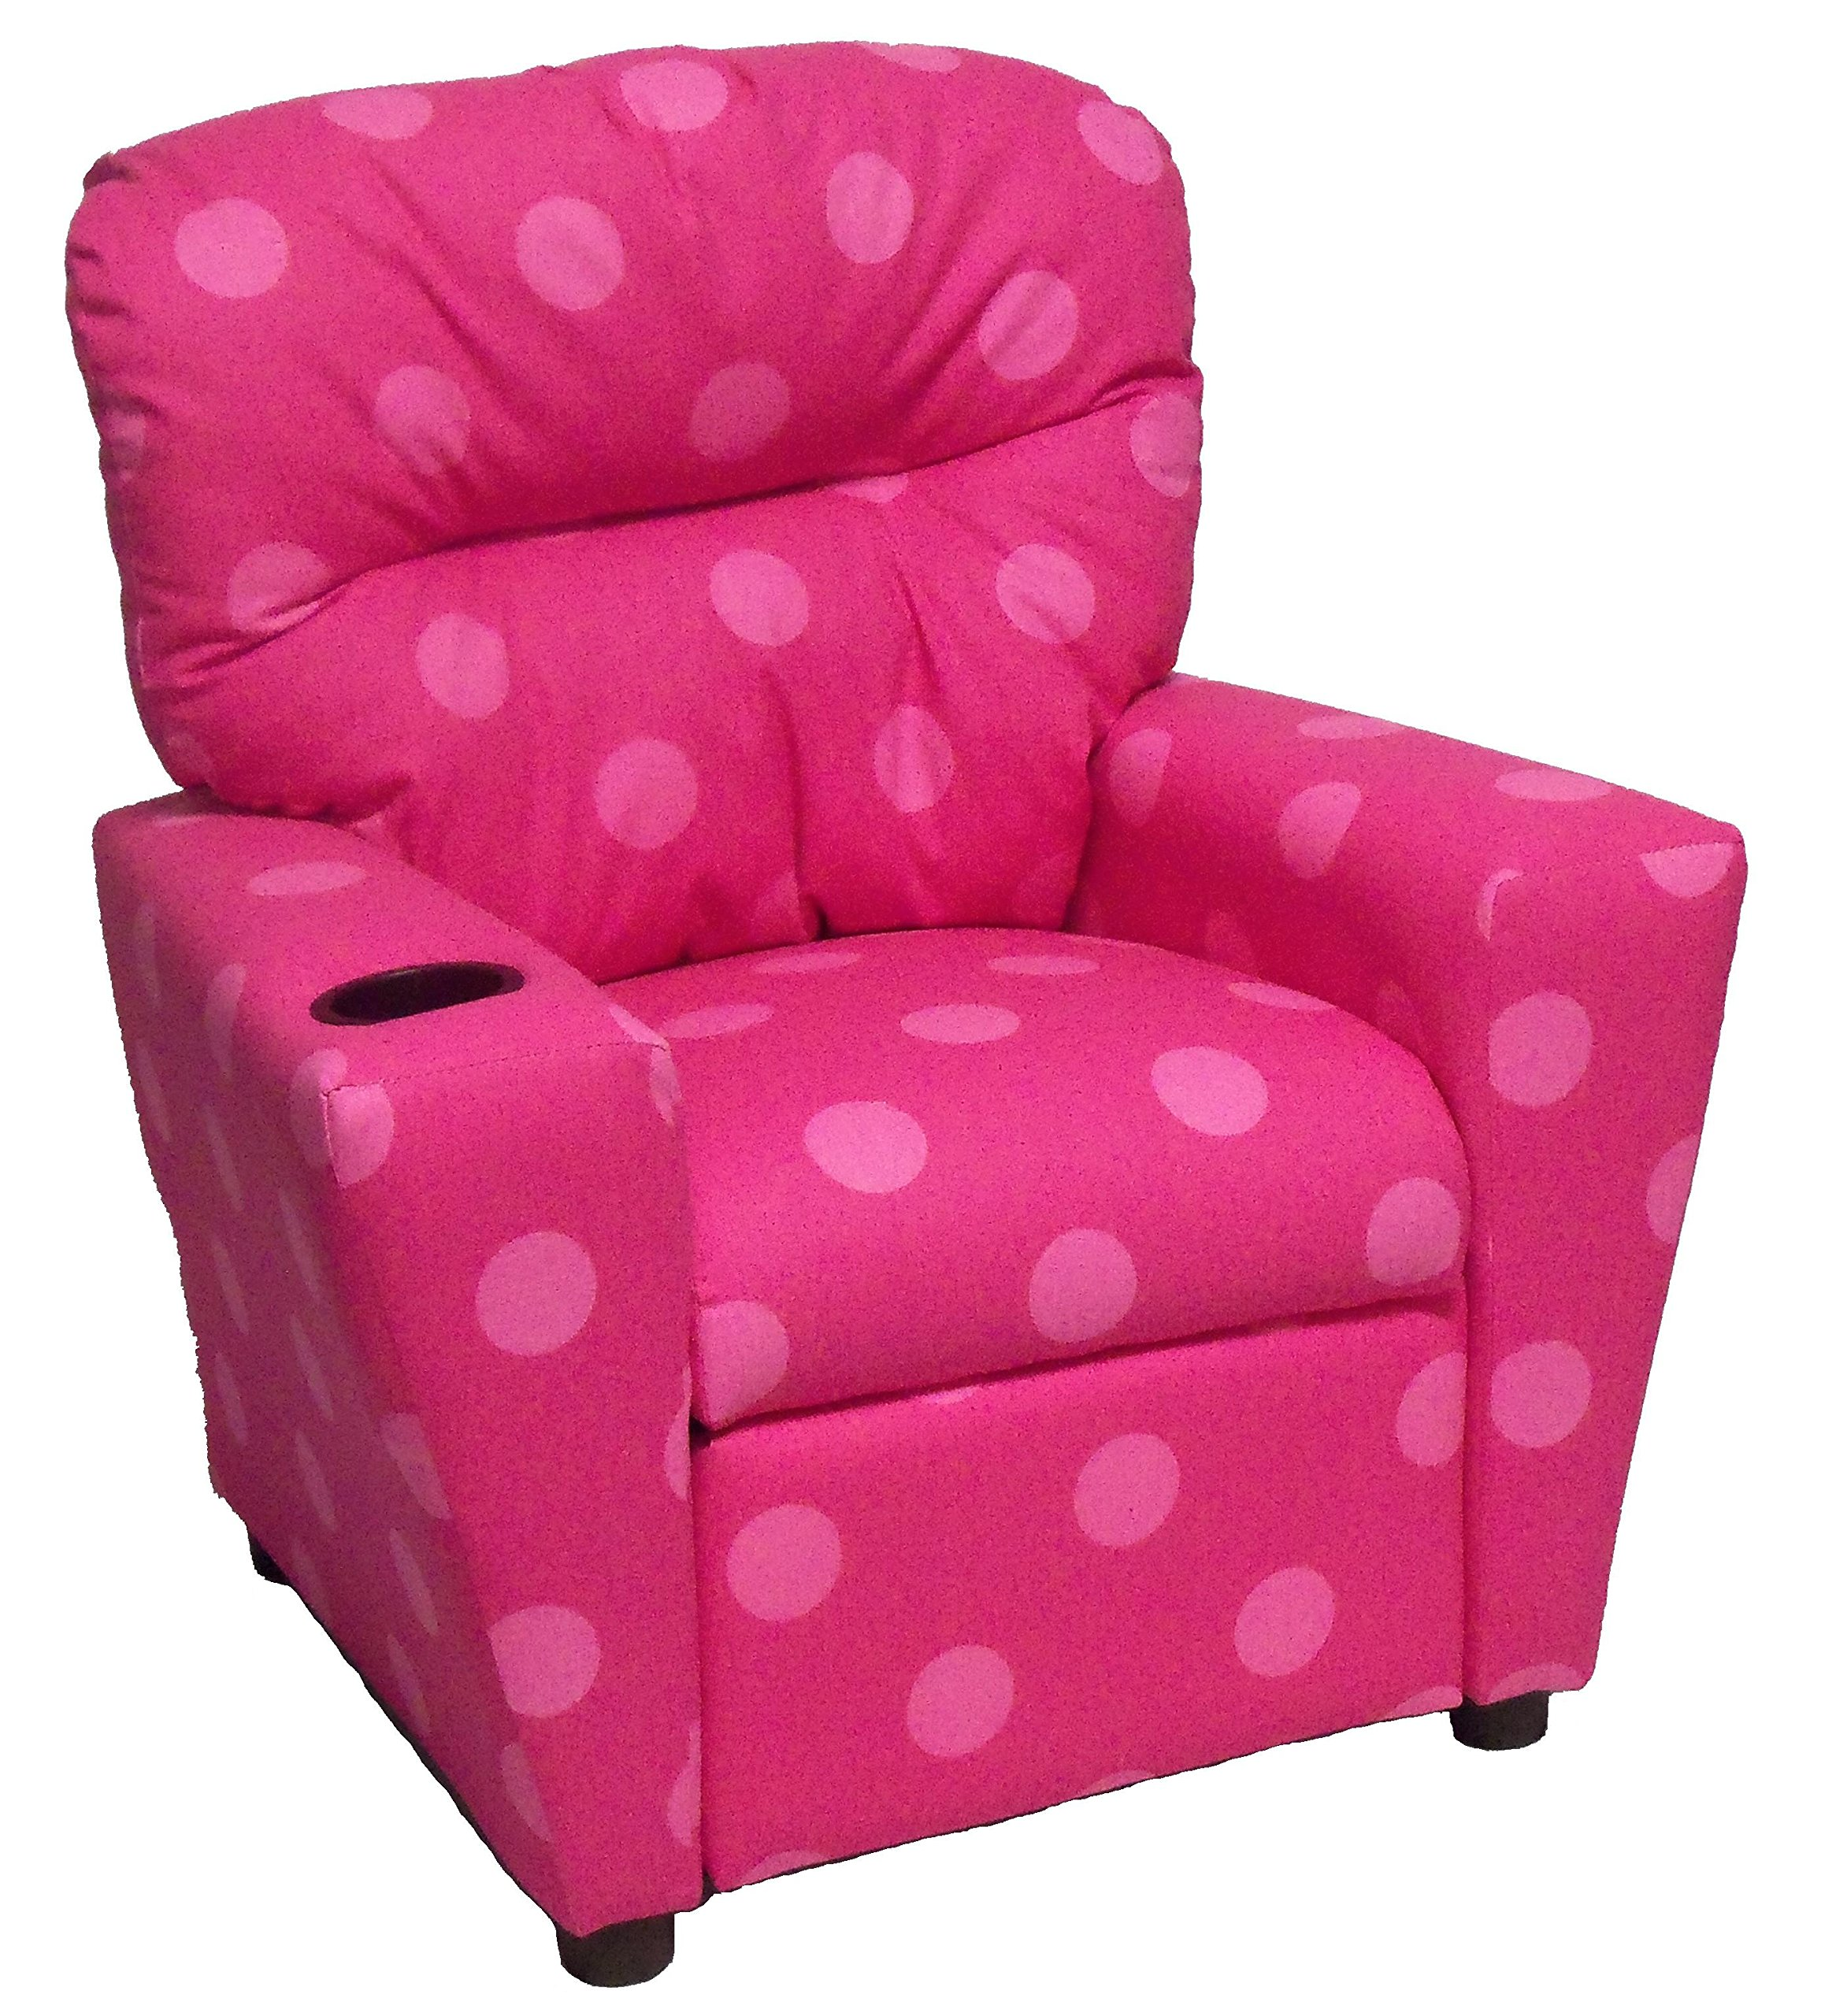 Brazil Furniture 401C-oxygen pink Children's Home Theater Recliner with Cupholder, Oxygen Pink